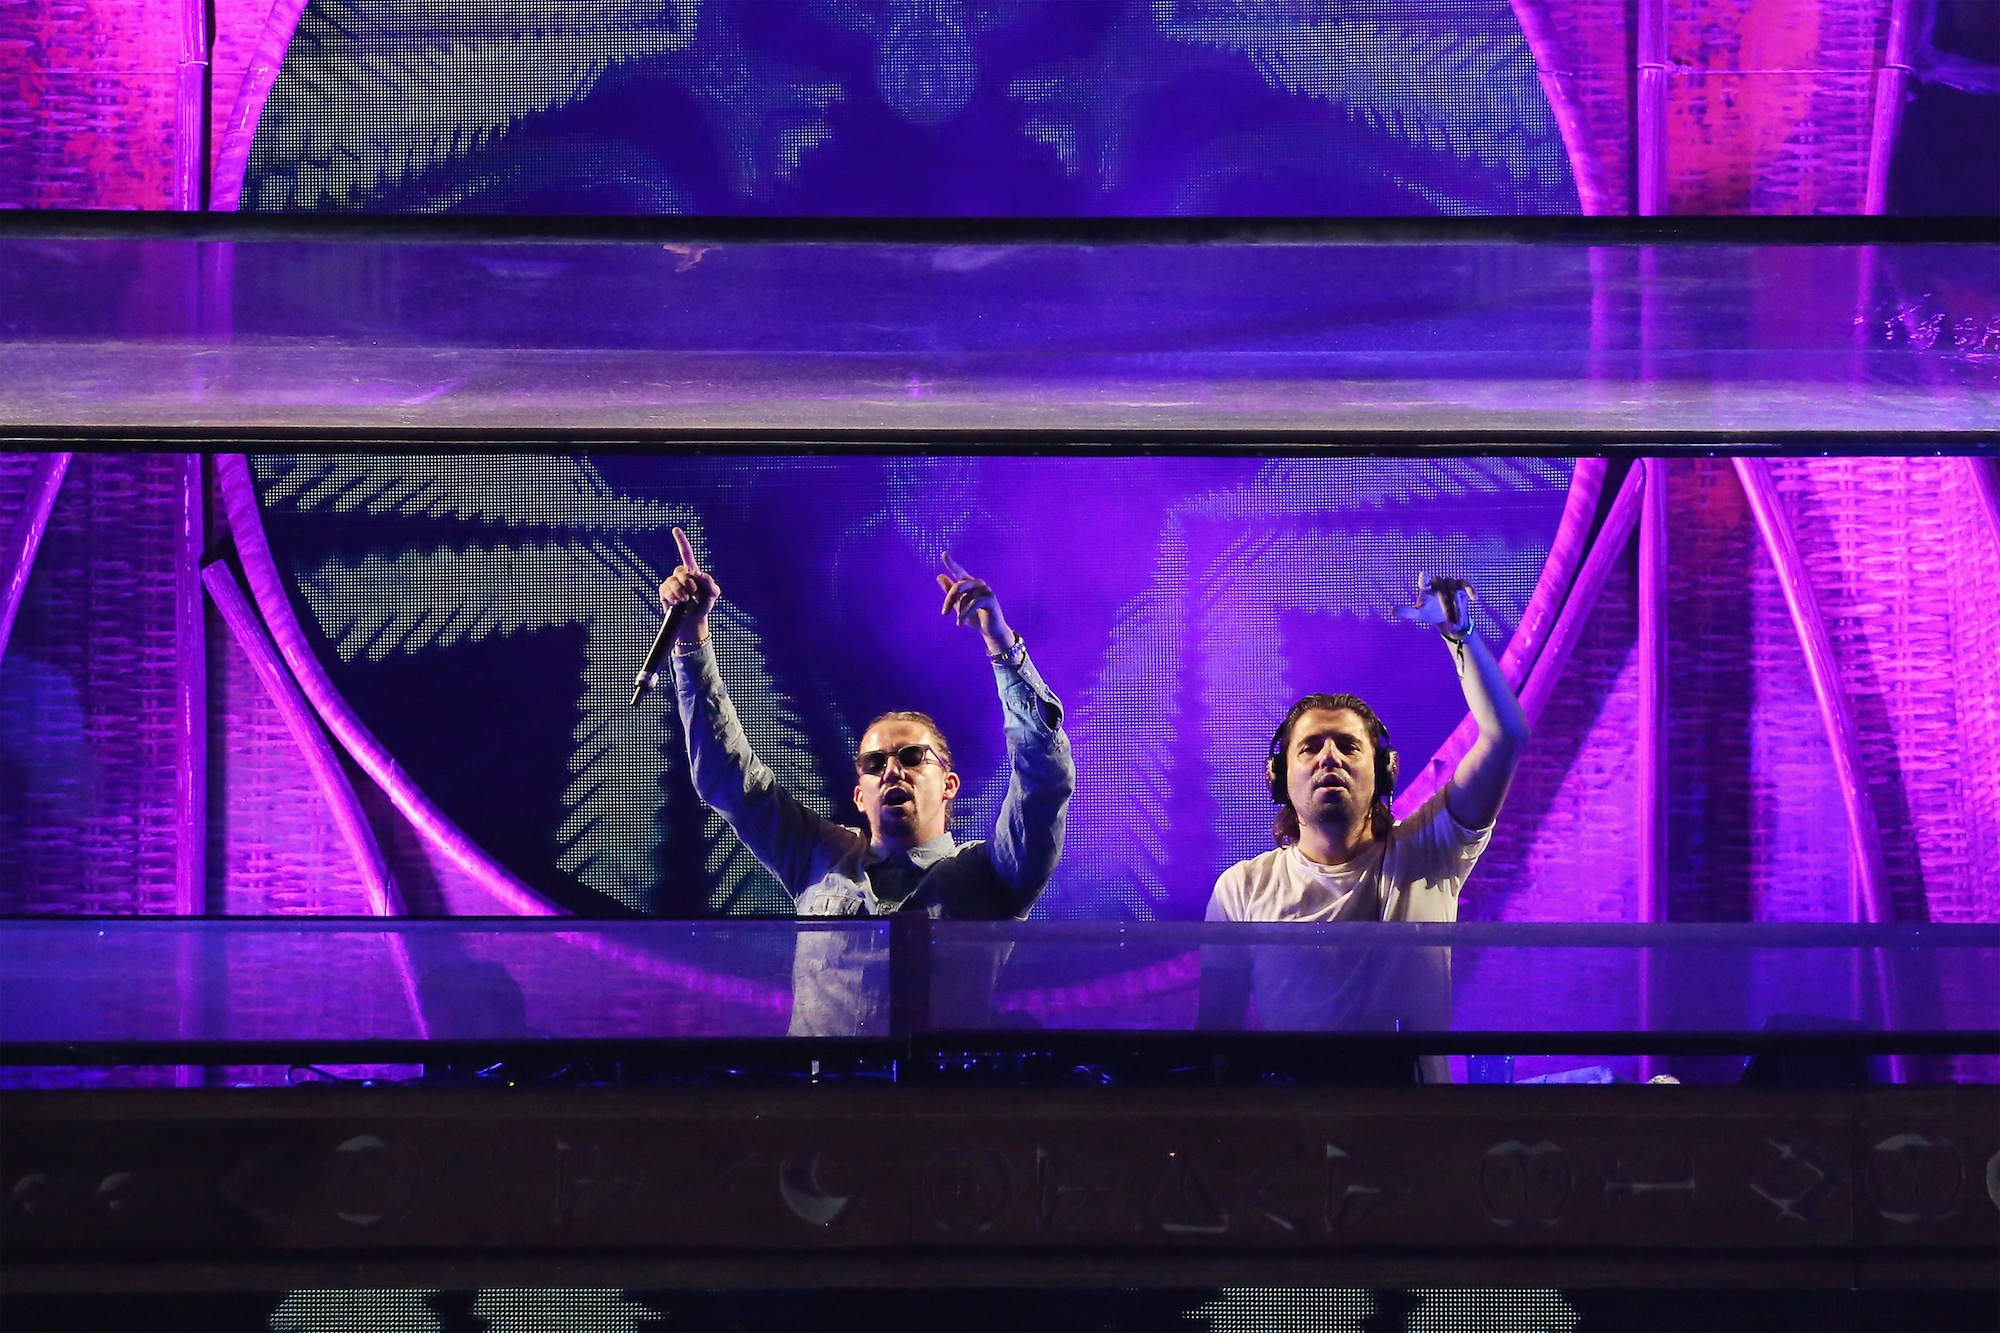 NEW YORK, NY - MAY 14:  Dimitri Vegas and Like Mike perform during the 2016 Electric Daisy Carnival on May 14, 2016 in New Yo